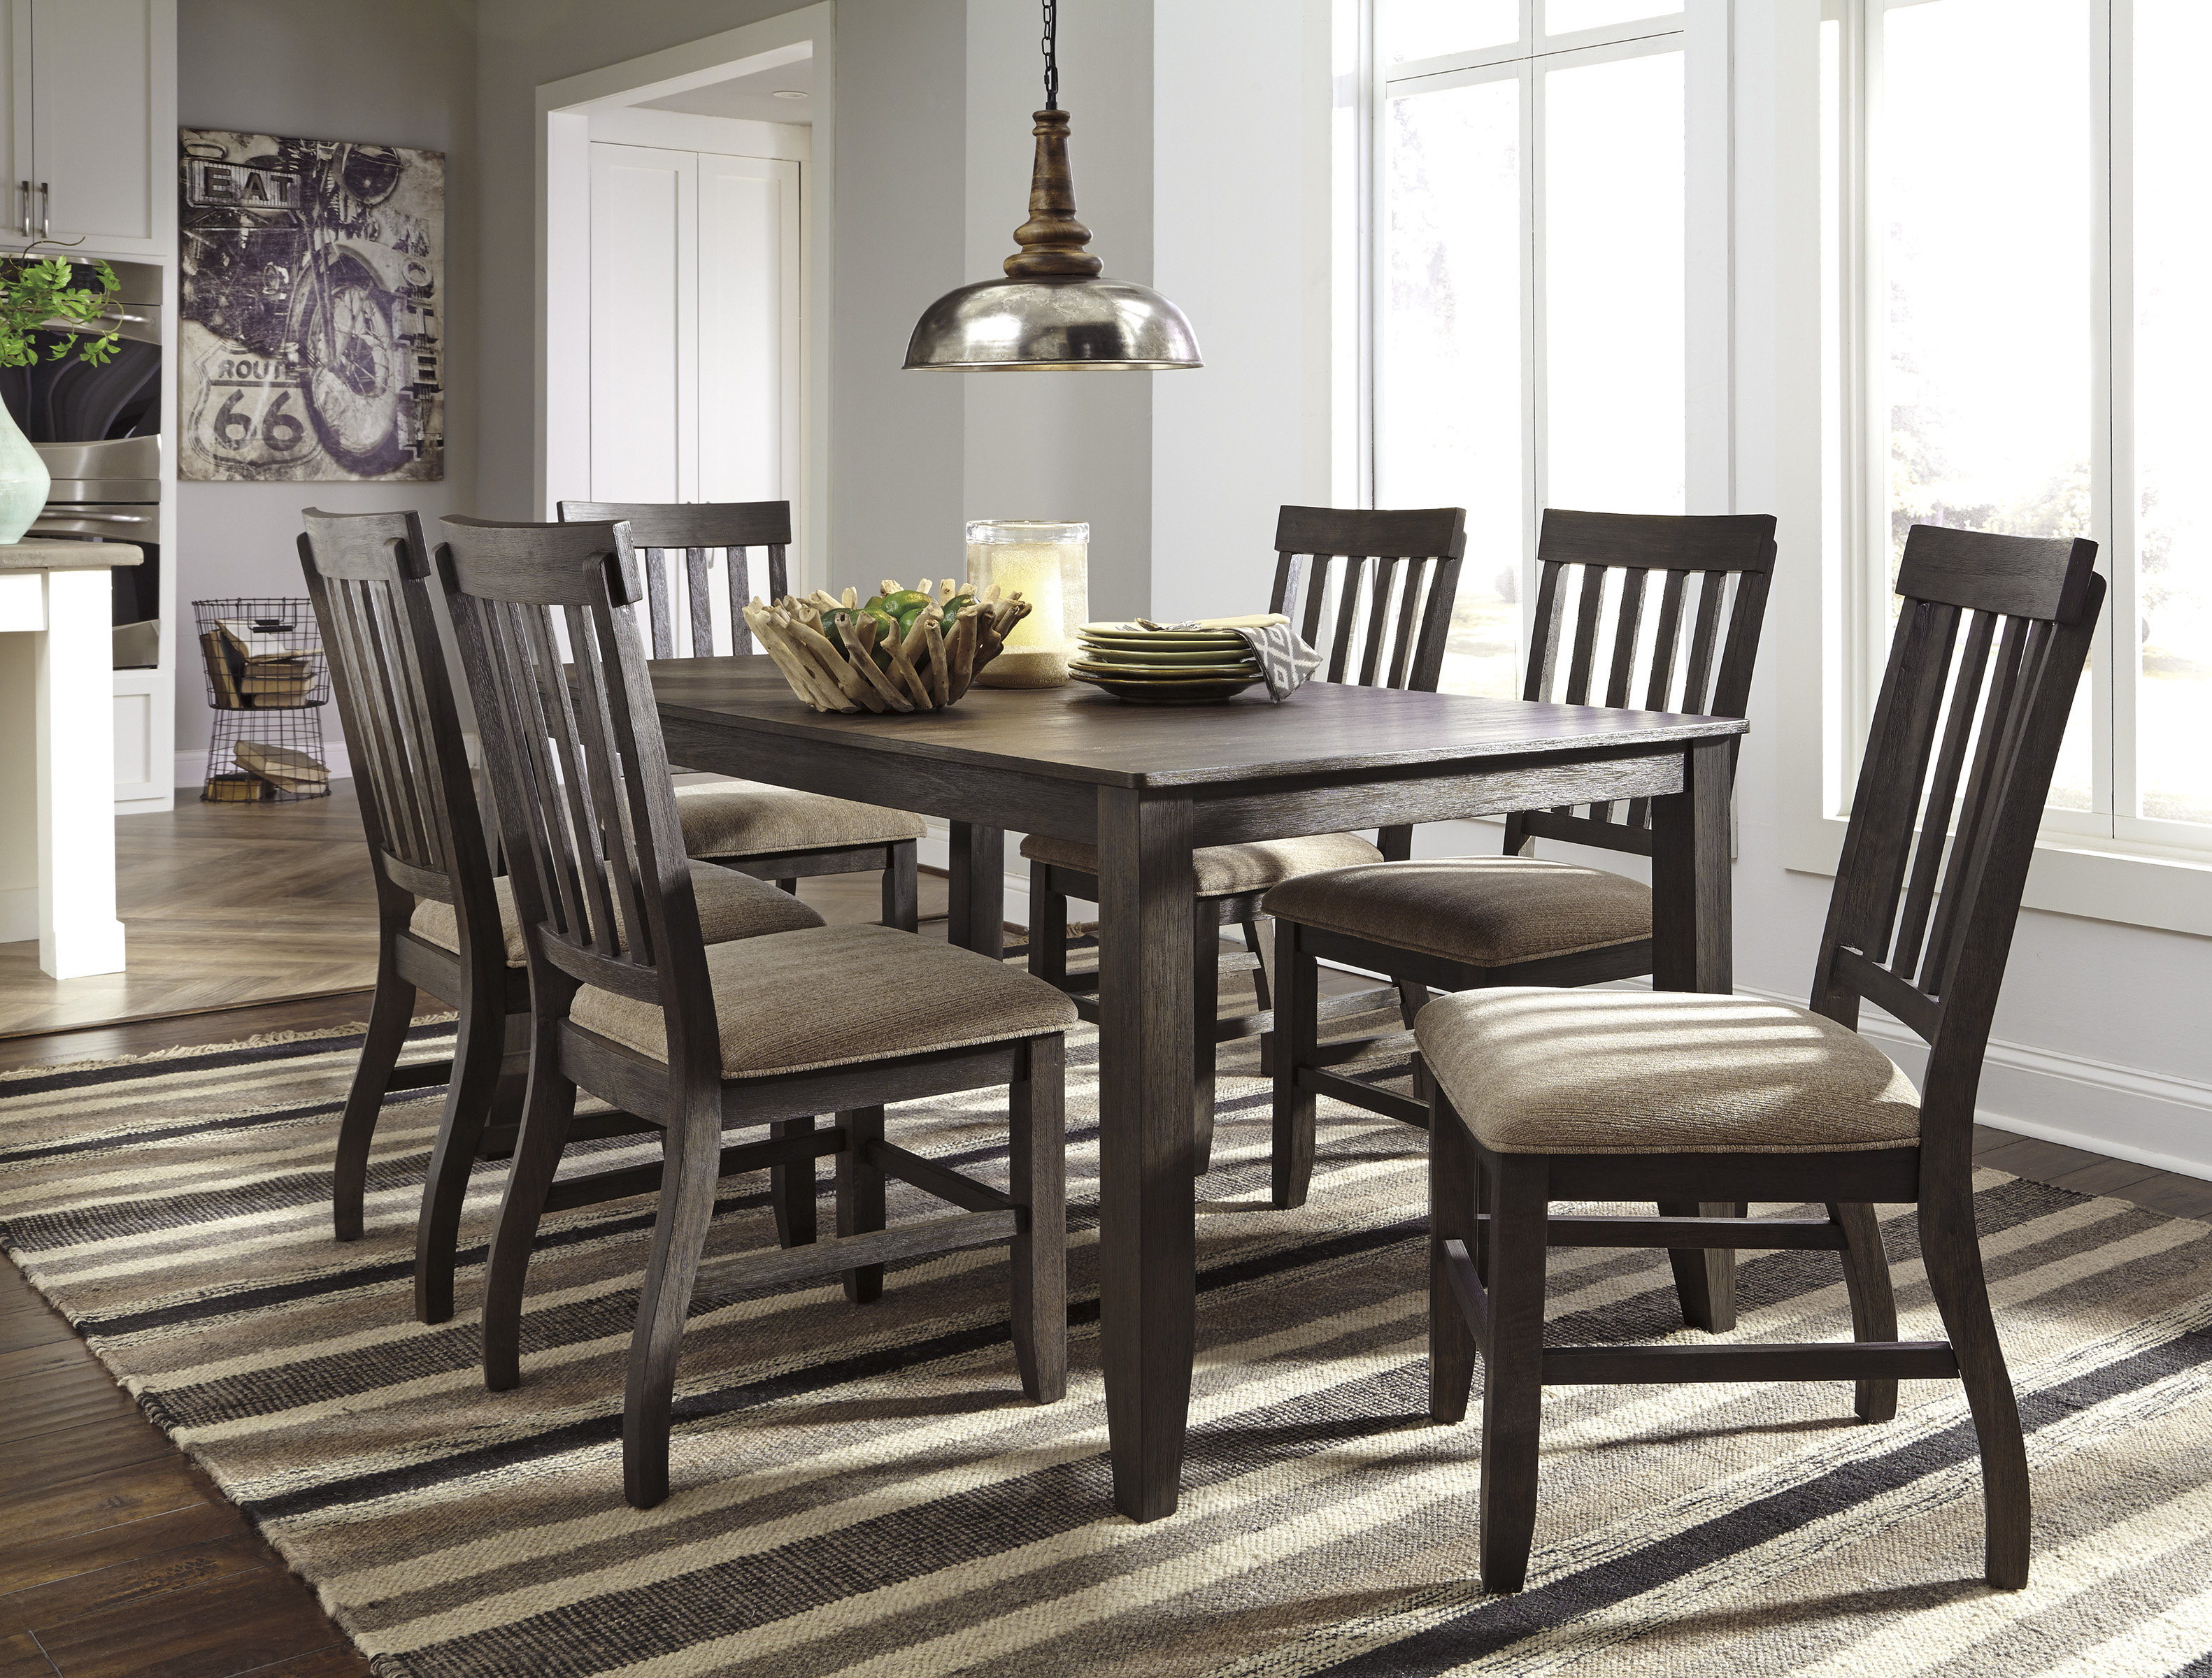 dresbar urbanology grayish brown 7pc rectangle dining room on dining room sets on clearance id=67526